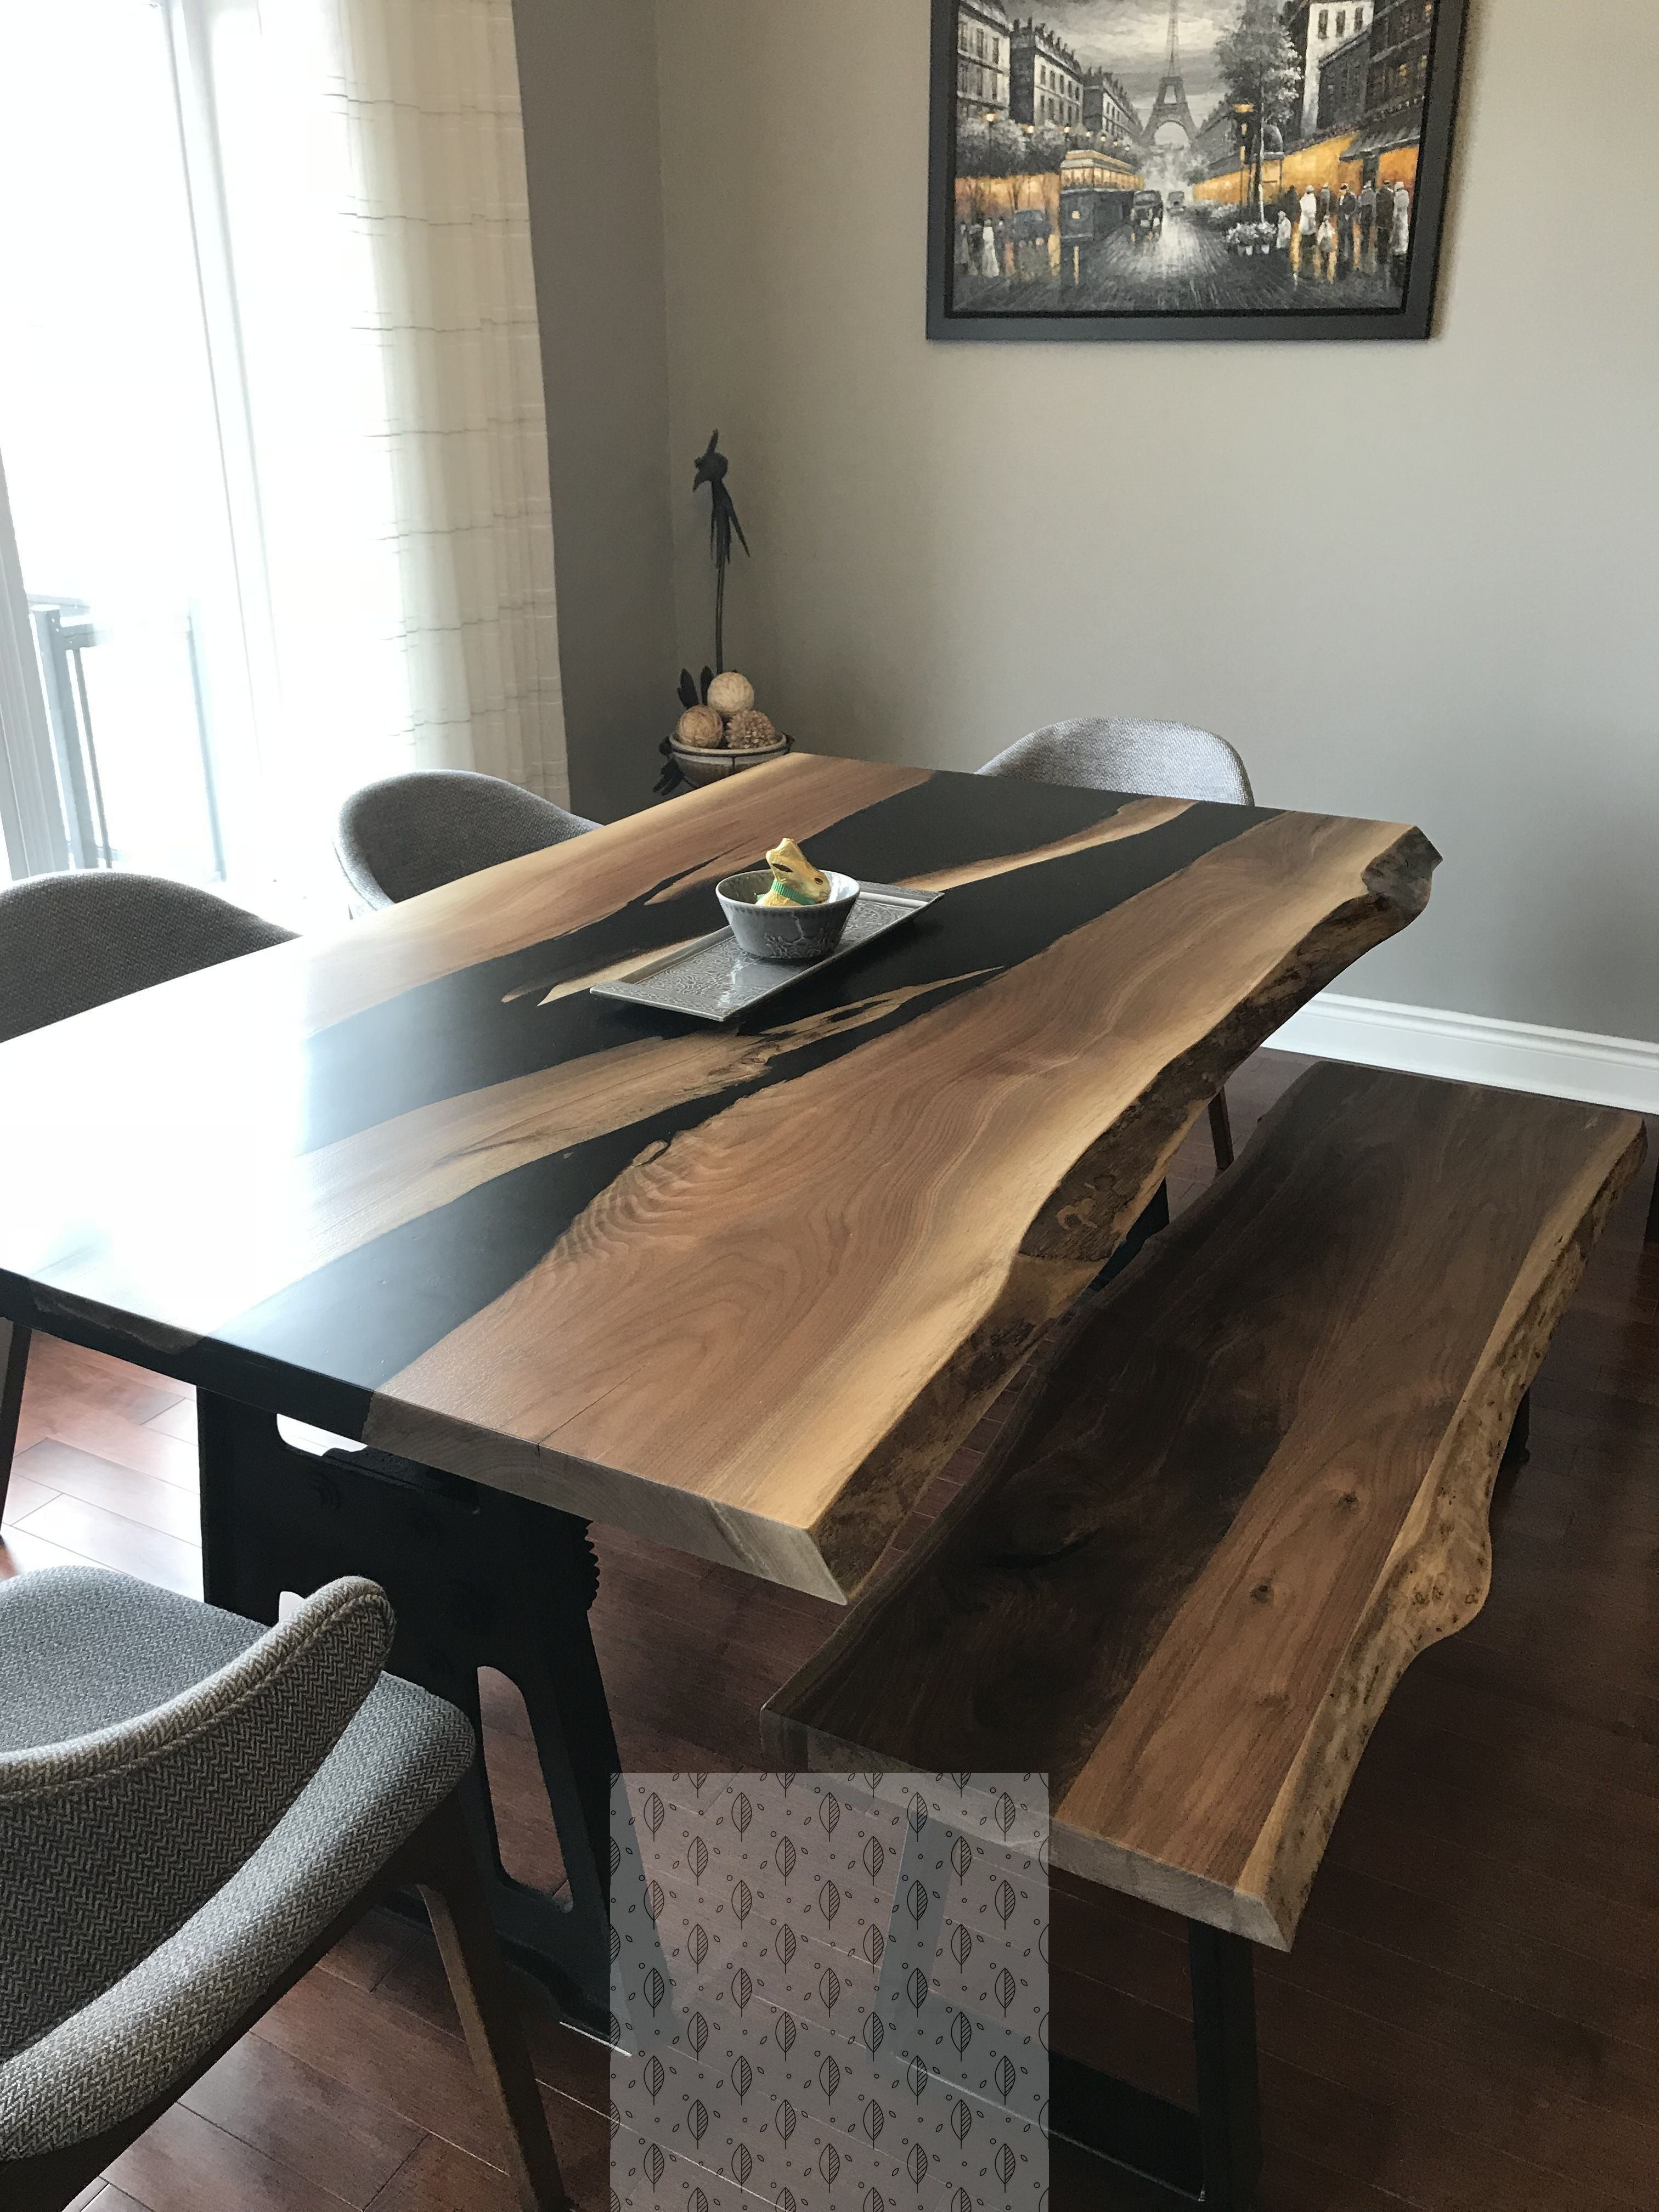 14 Mesmerizing Beginner Wood Working Easy Diy Ideas Unique Dining Tables Dining Table Design Wood Resin Table